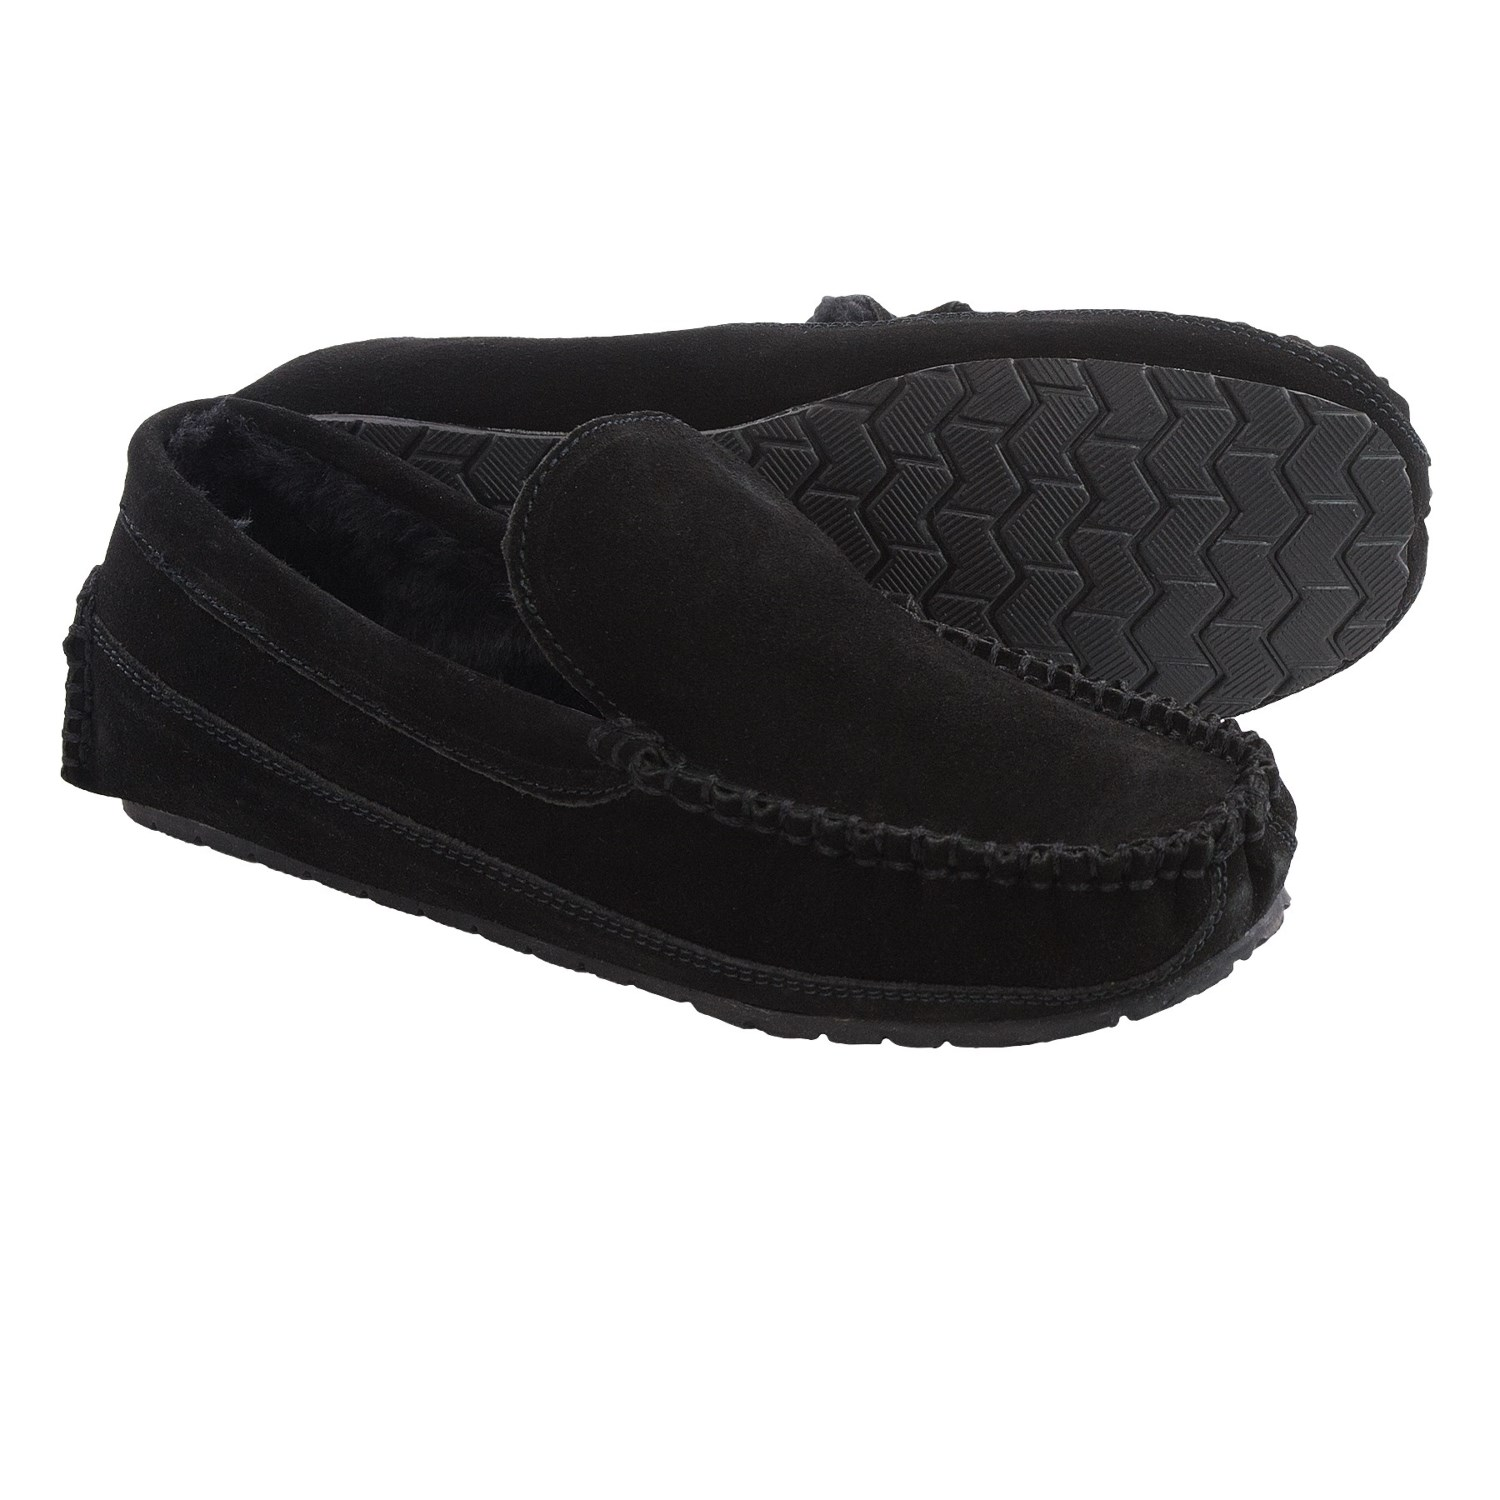 minnetonka black single men Shop at macy's ridgedale, minnetonka, mn for women's and men's apparel, shoes, jewelry, makeup, furniture, home decor check for hours and directions.